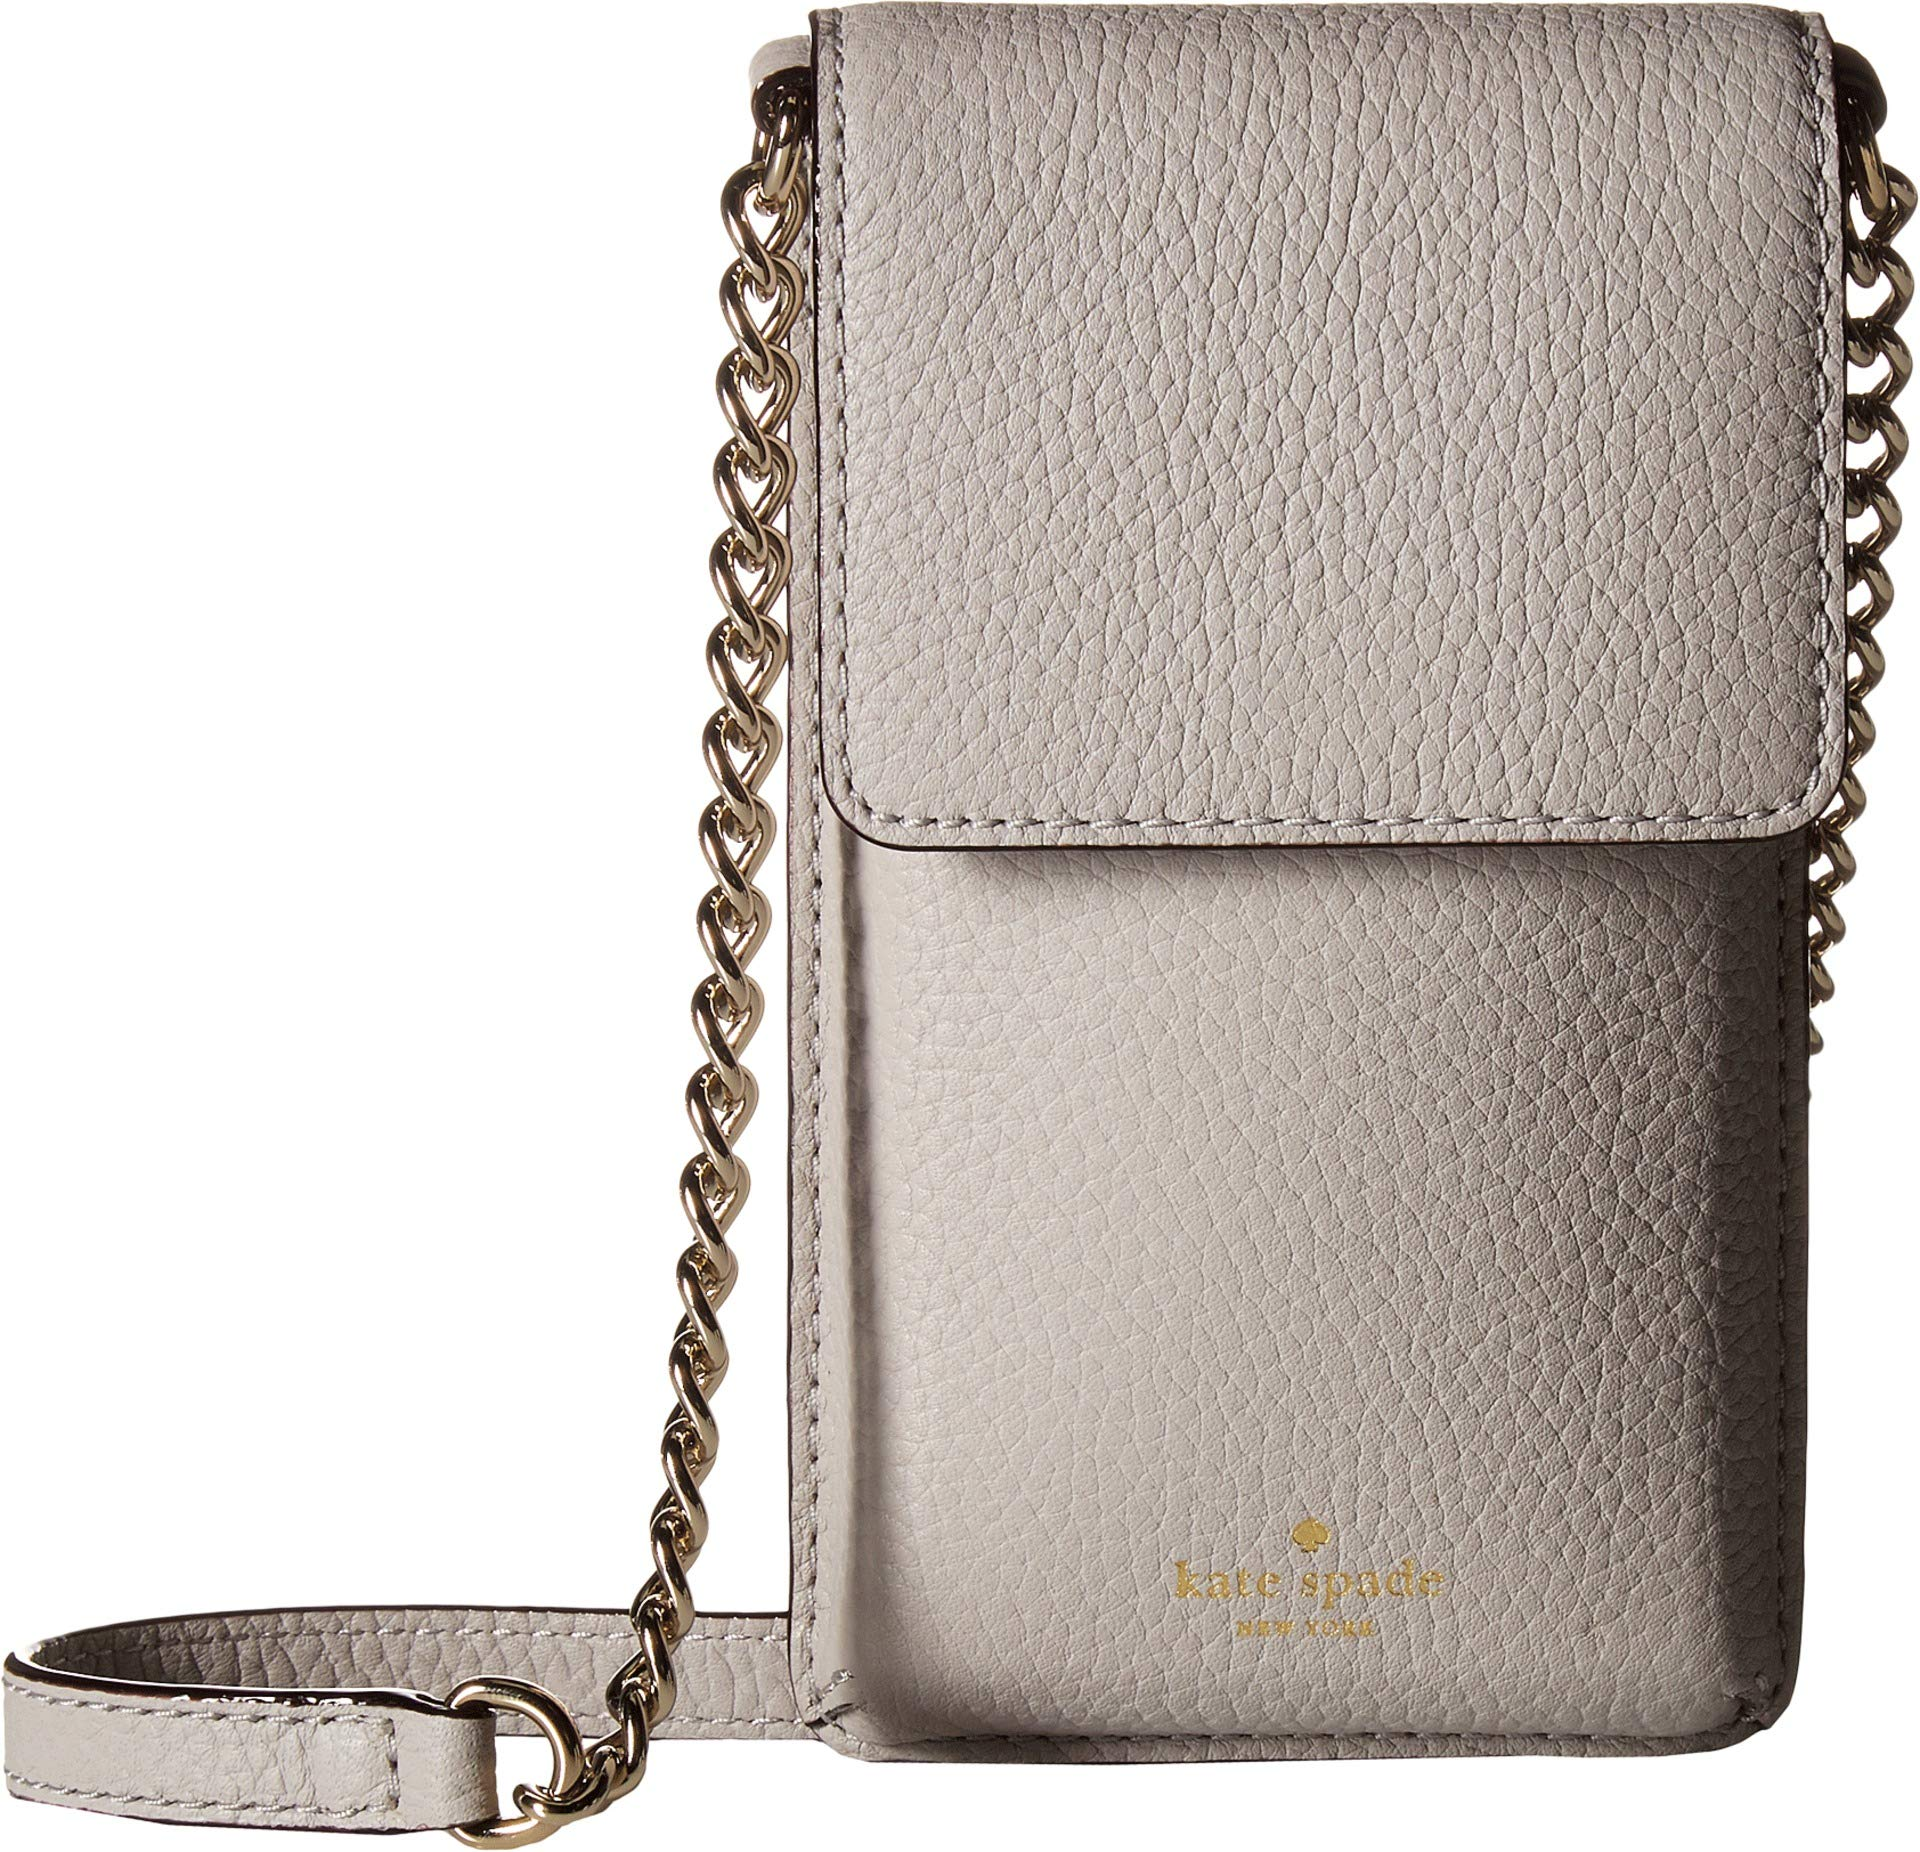 Kate Spade New York Women's North/South Crossbody Phone Case for iPhone¿ 6, 6s, 7, 8 Ash Grey One Size